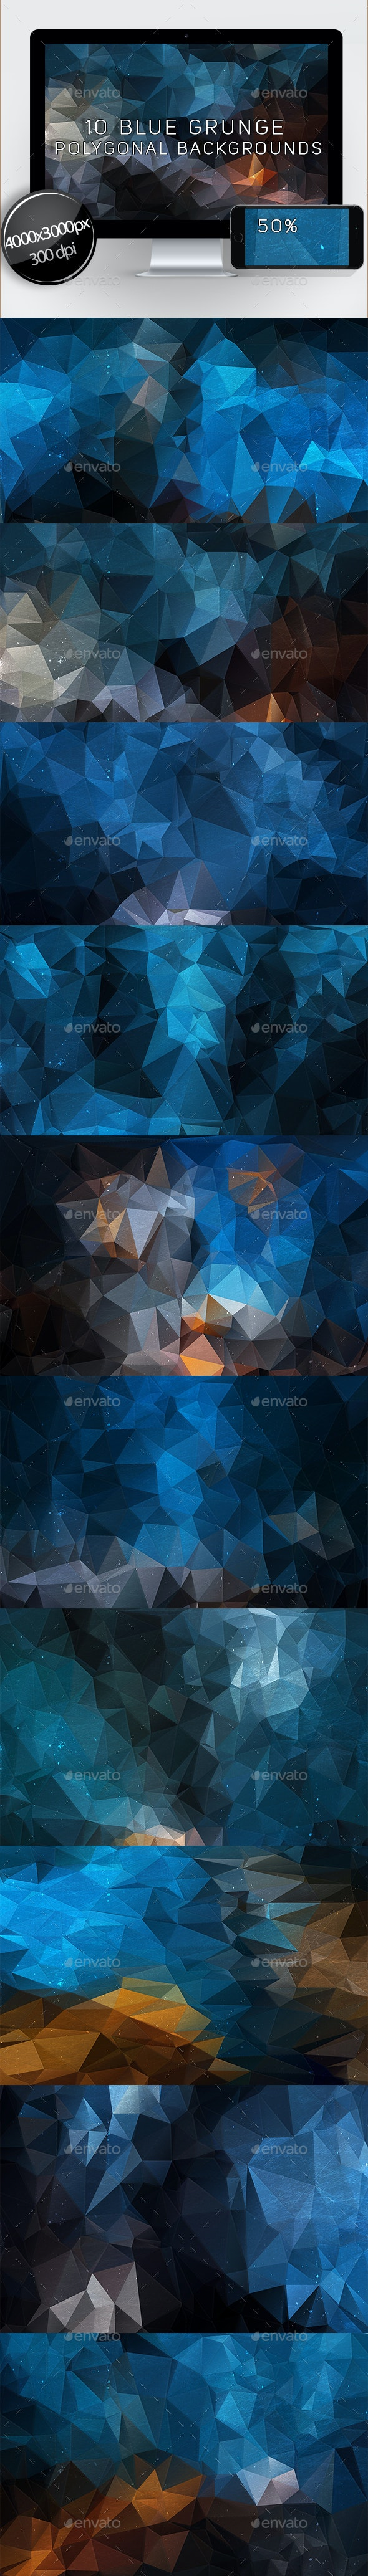 10 Blue Grunge Polygonal Backgrounds - Abstract Backgrounds